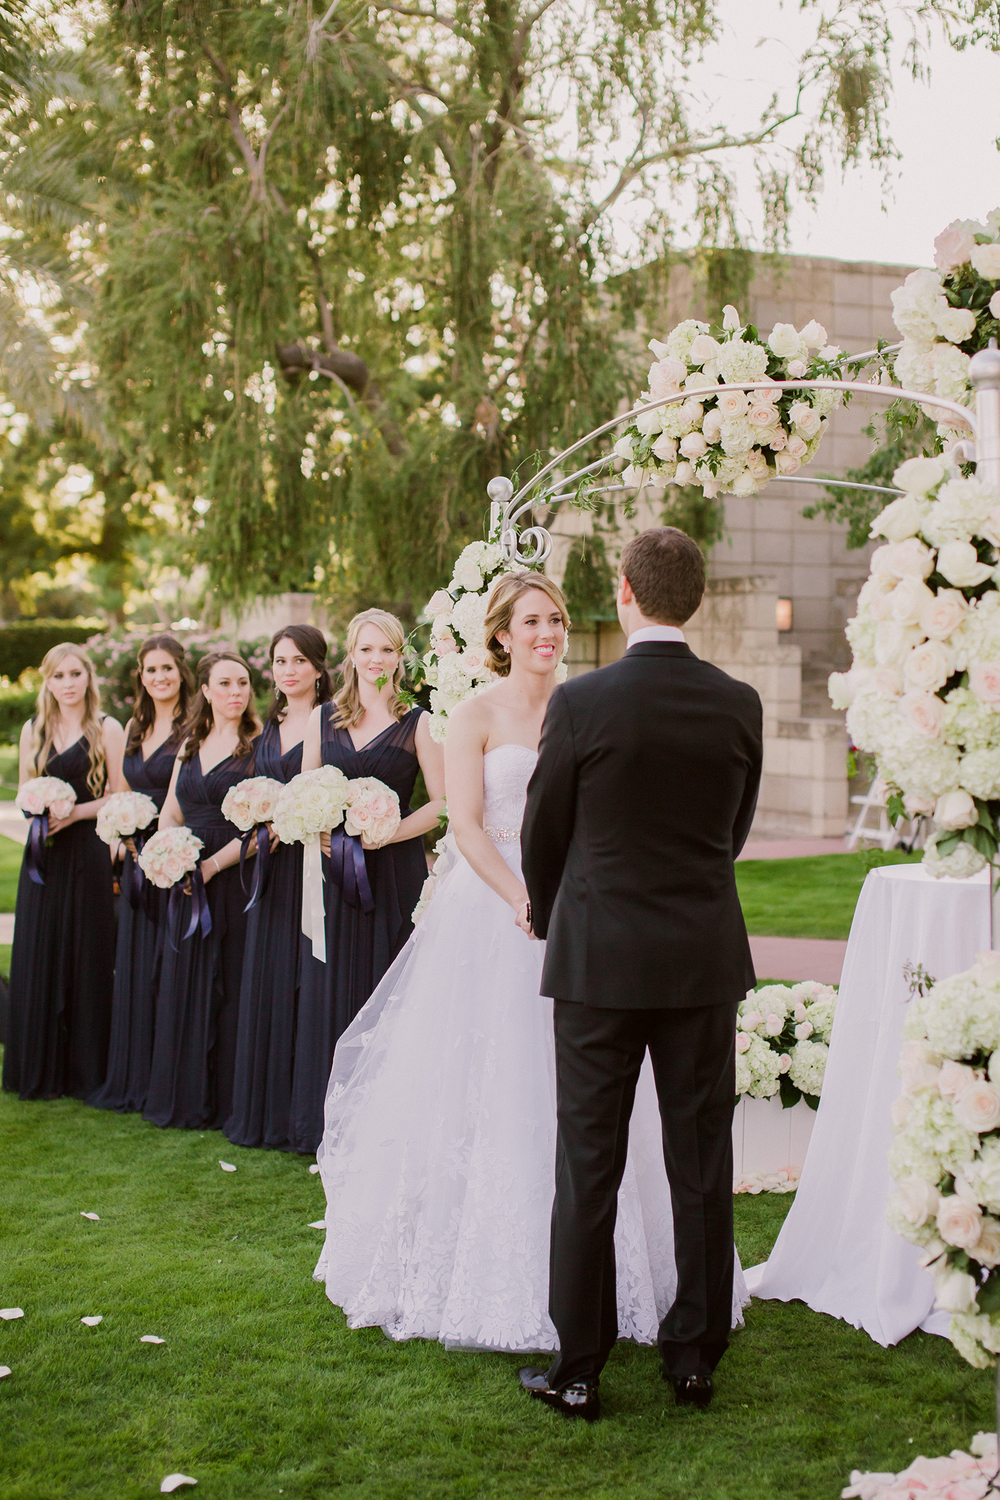 FourteenForty-ElyseHall-Arizona-Garden-Wedding-14.jpg